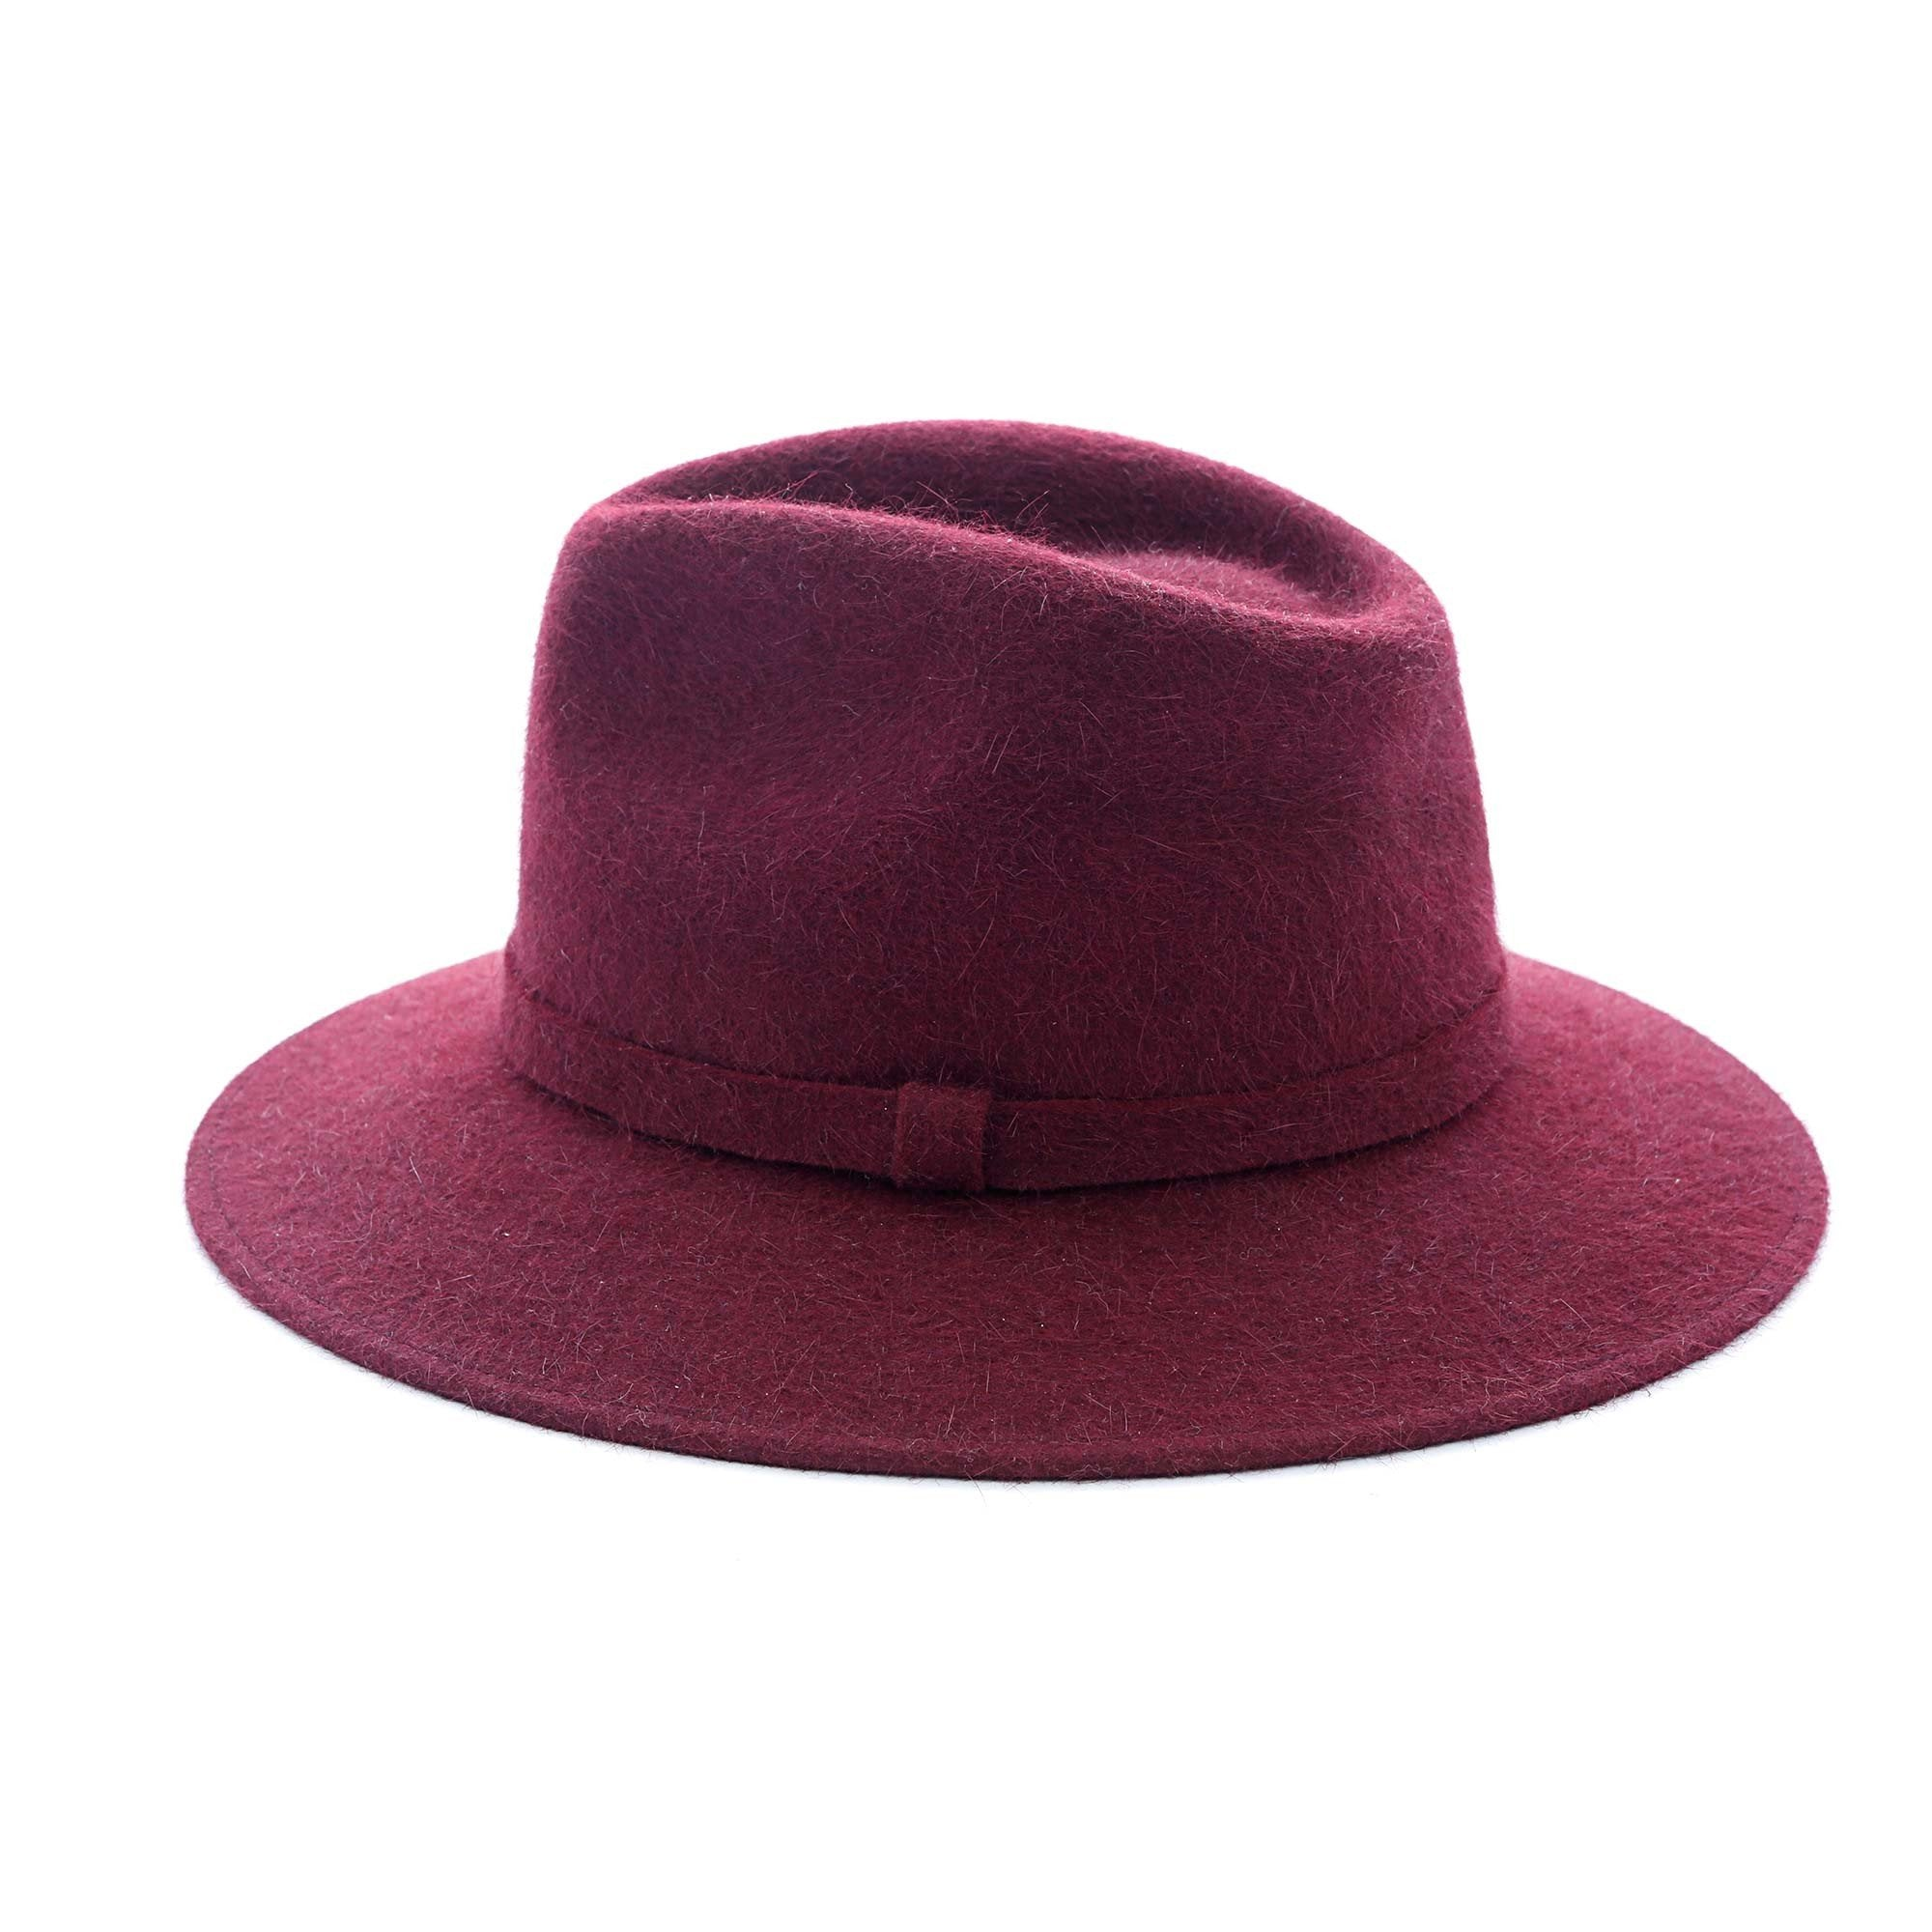 3015658751e20b Mens Hats | Sun Hats For Men | Stetson Burgundy – La Portegna